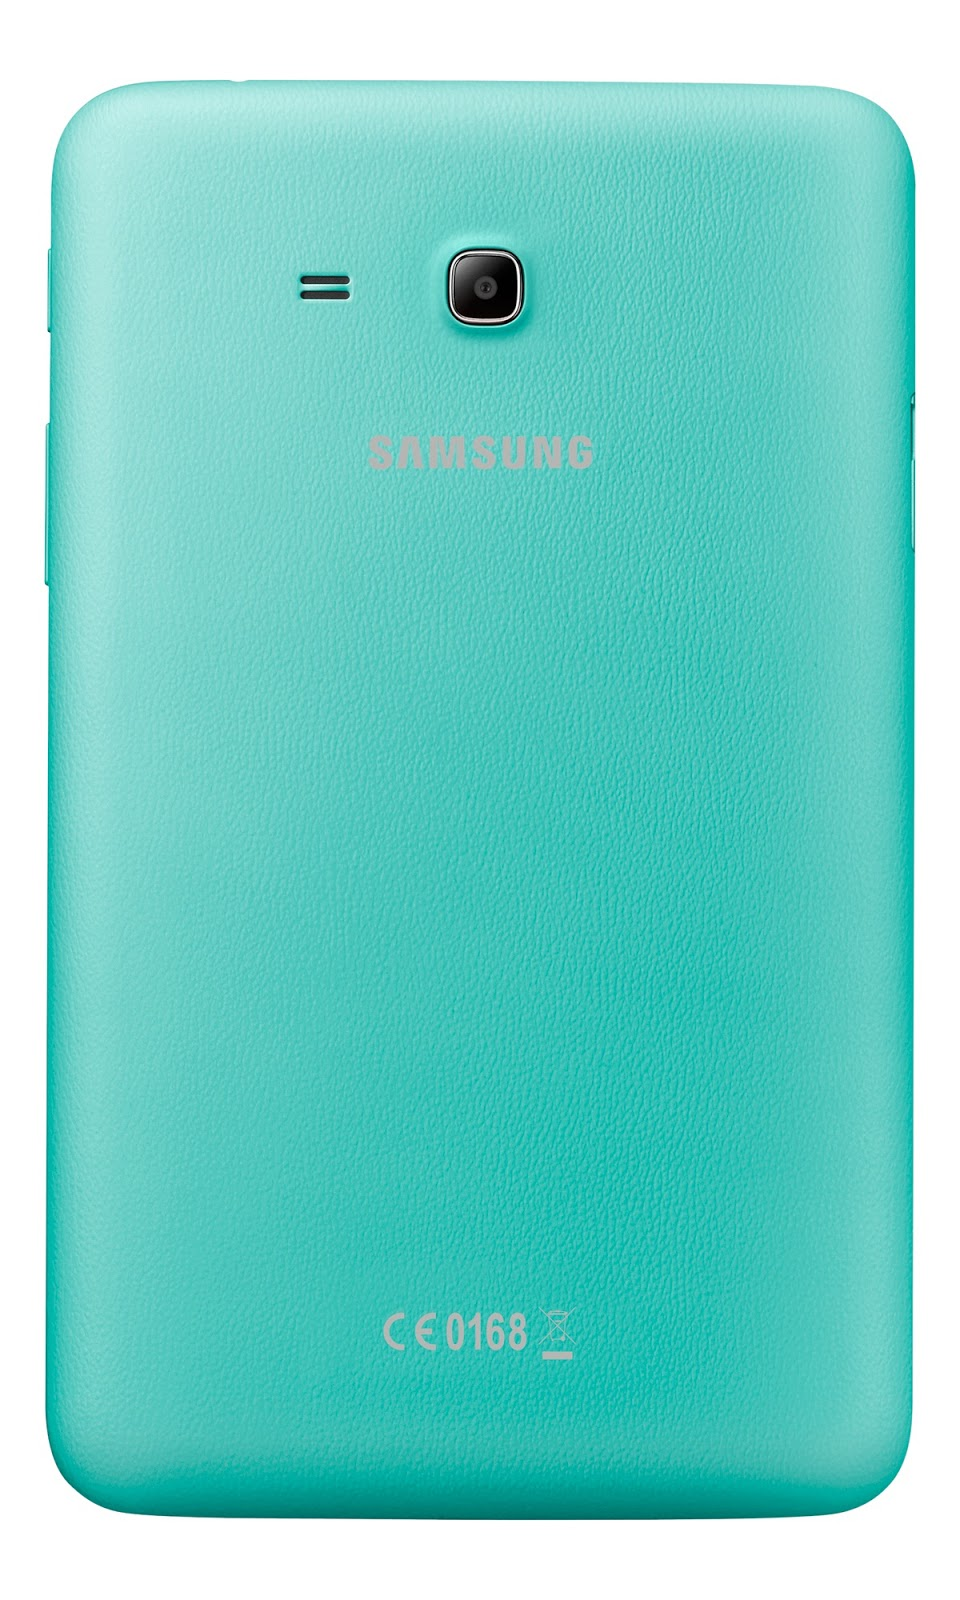 Samsung galaxy tab 3 lite gets 3 new colour variants blue green peach pink and lemon yellow - Samsung galaxy tab 4 lite ...